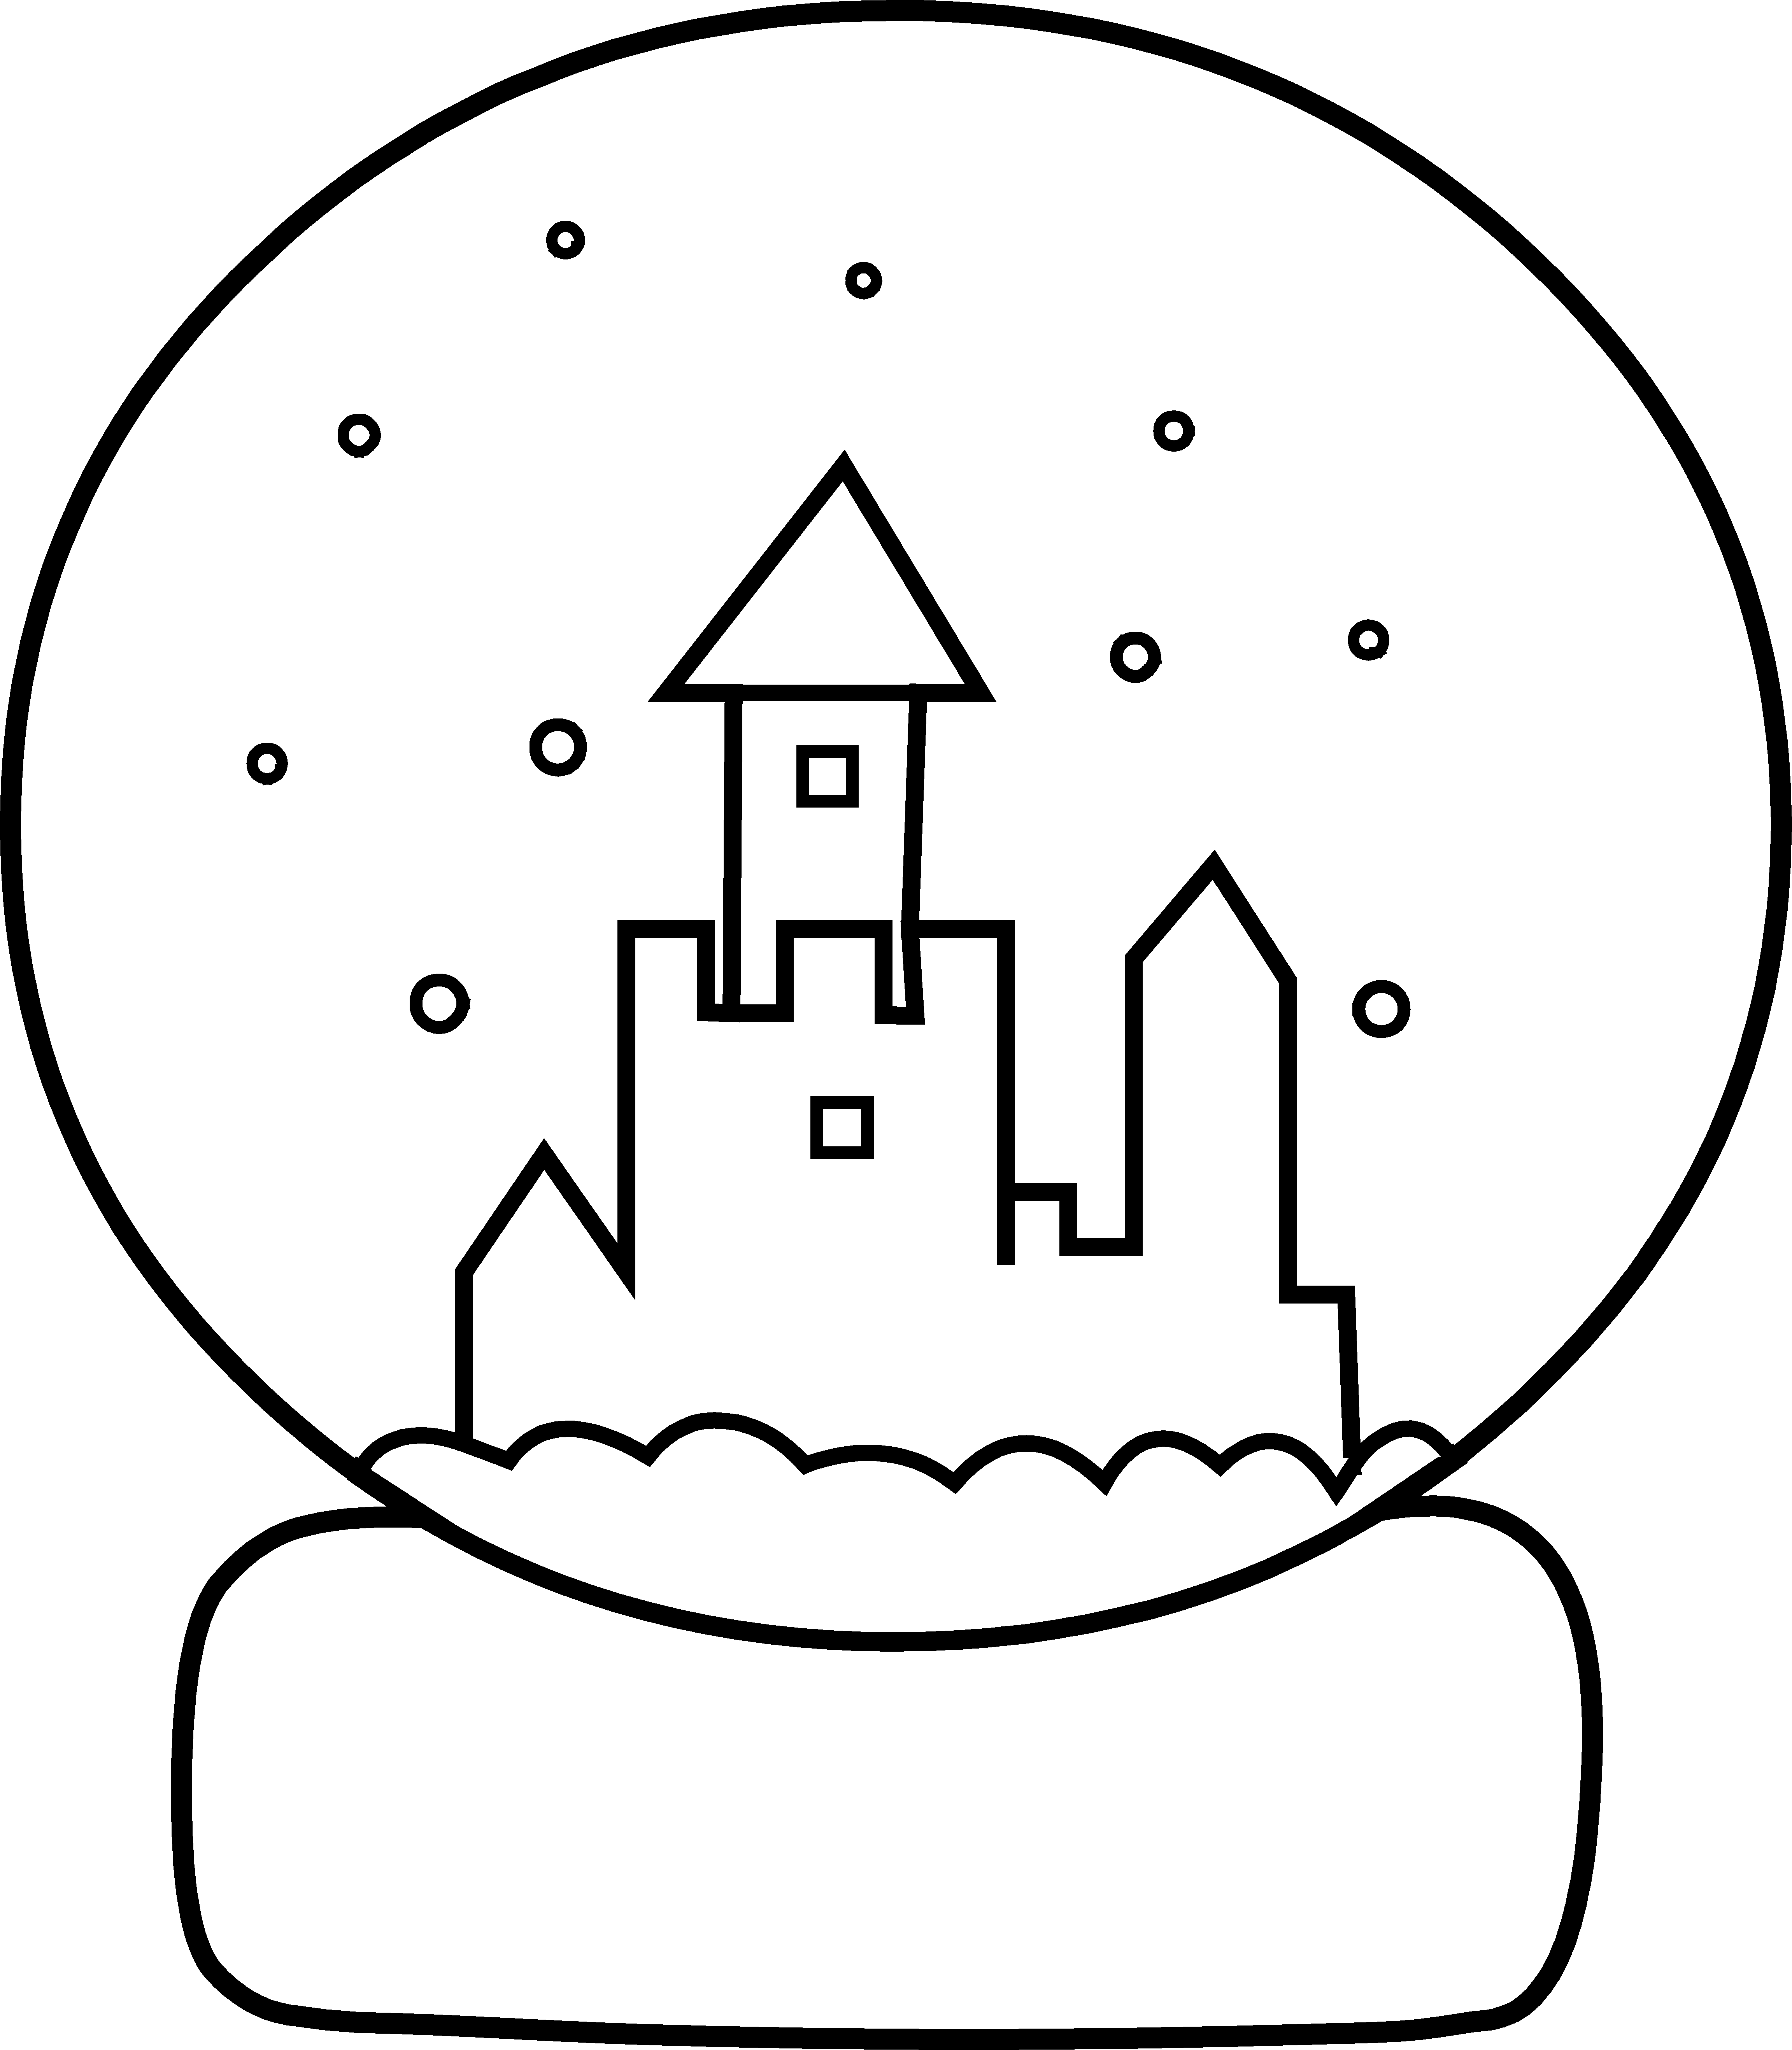 Snowglobe drawing cute. Snow globe coloring page